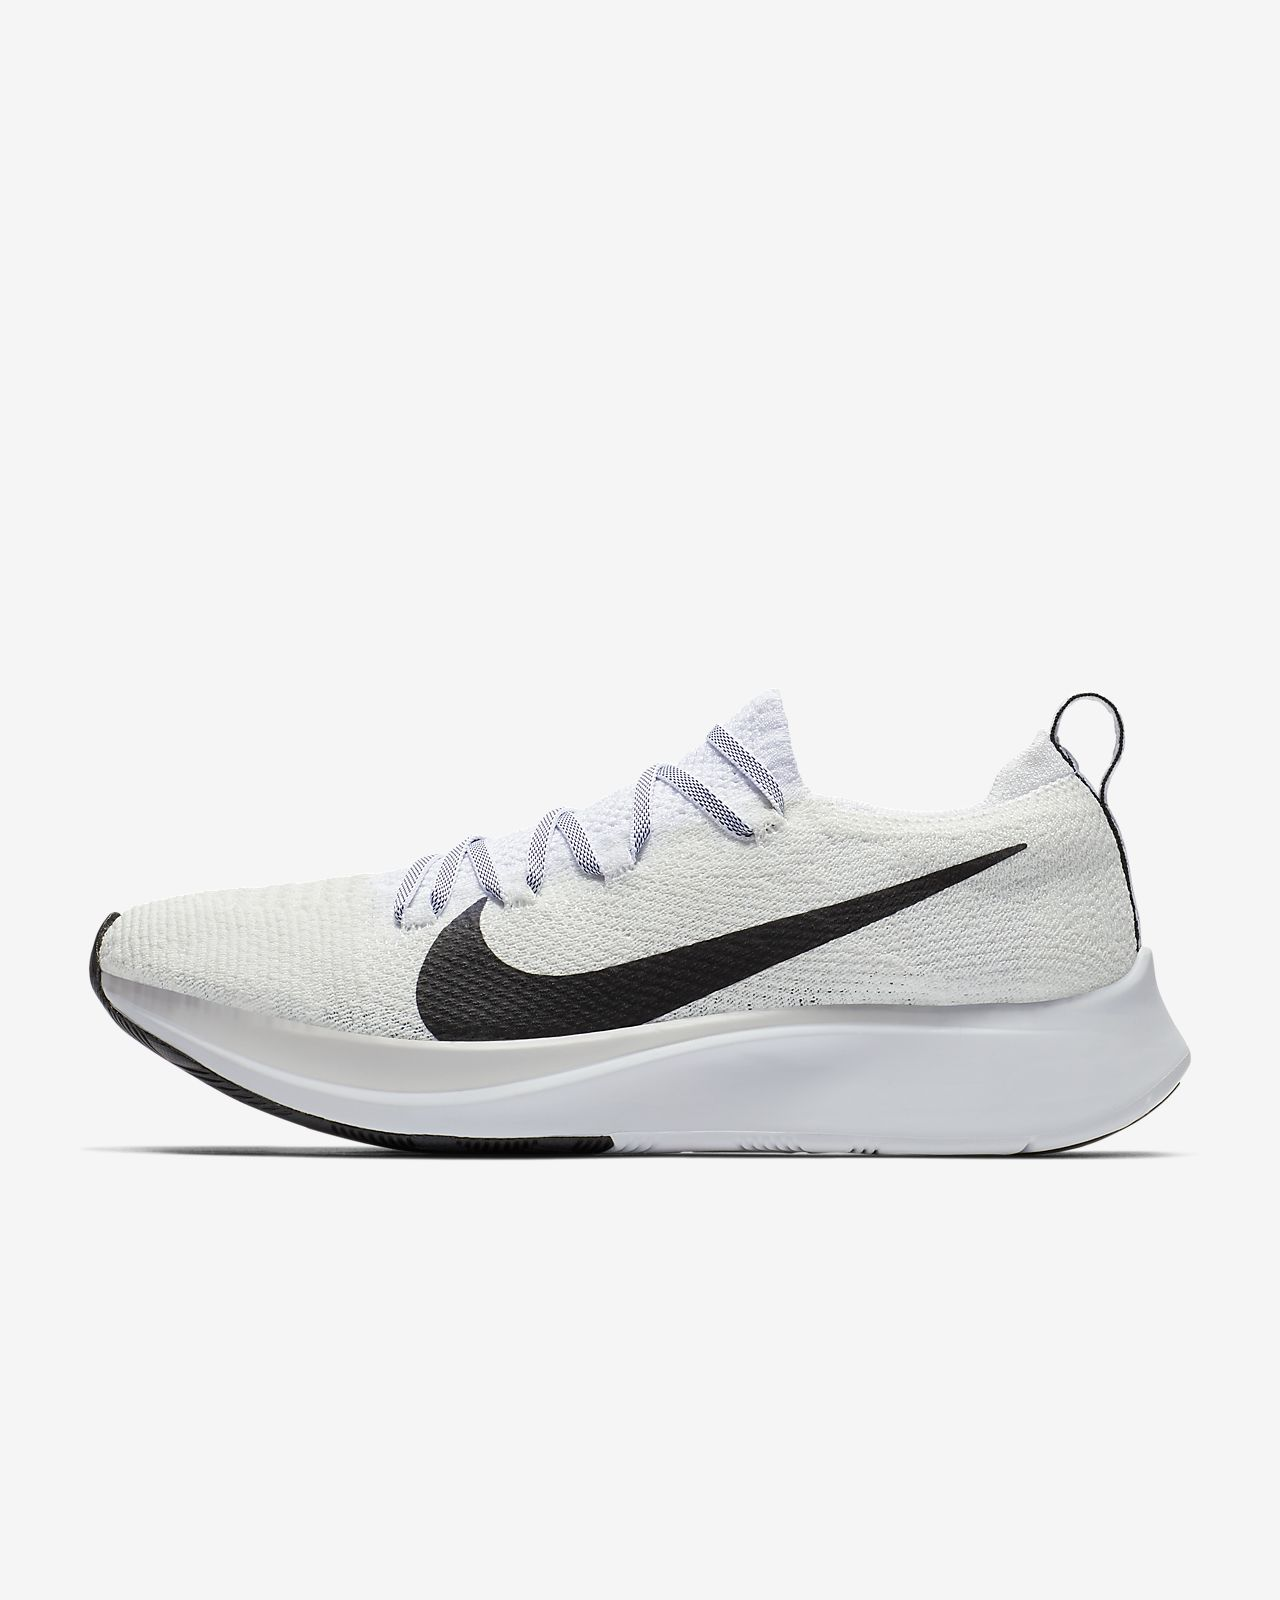 are nike zoom fly good for running